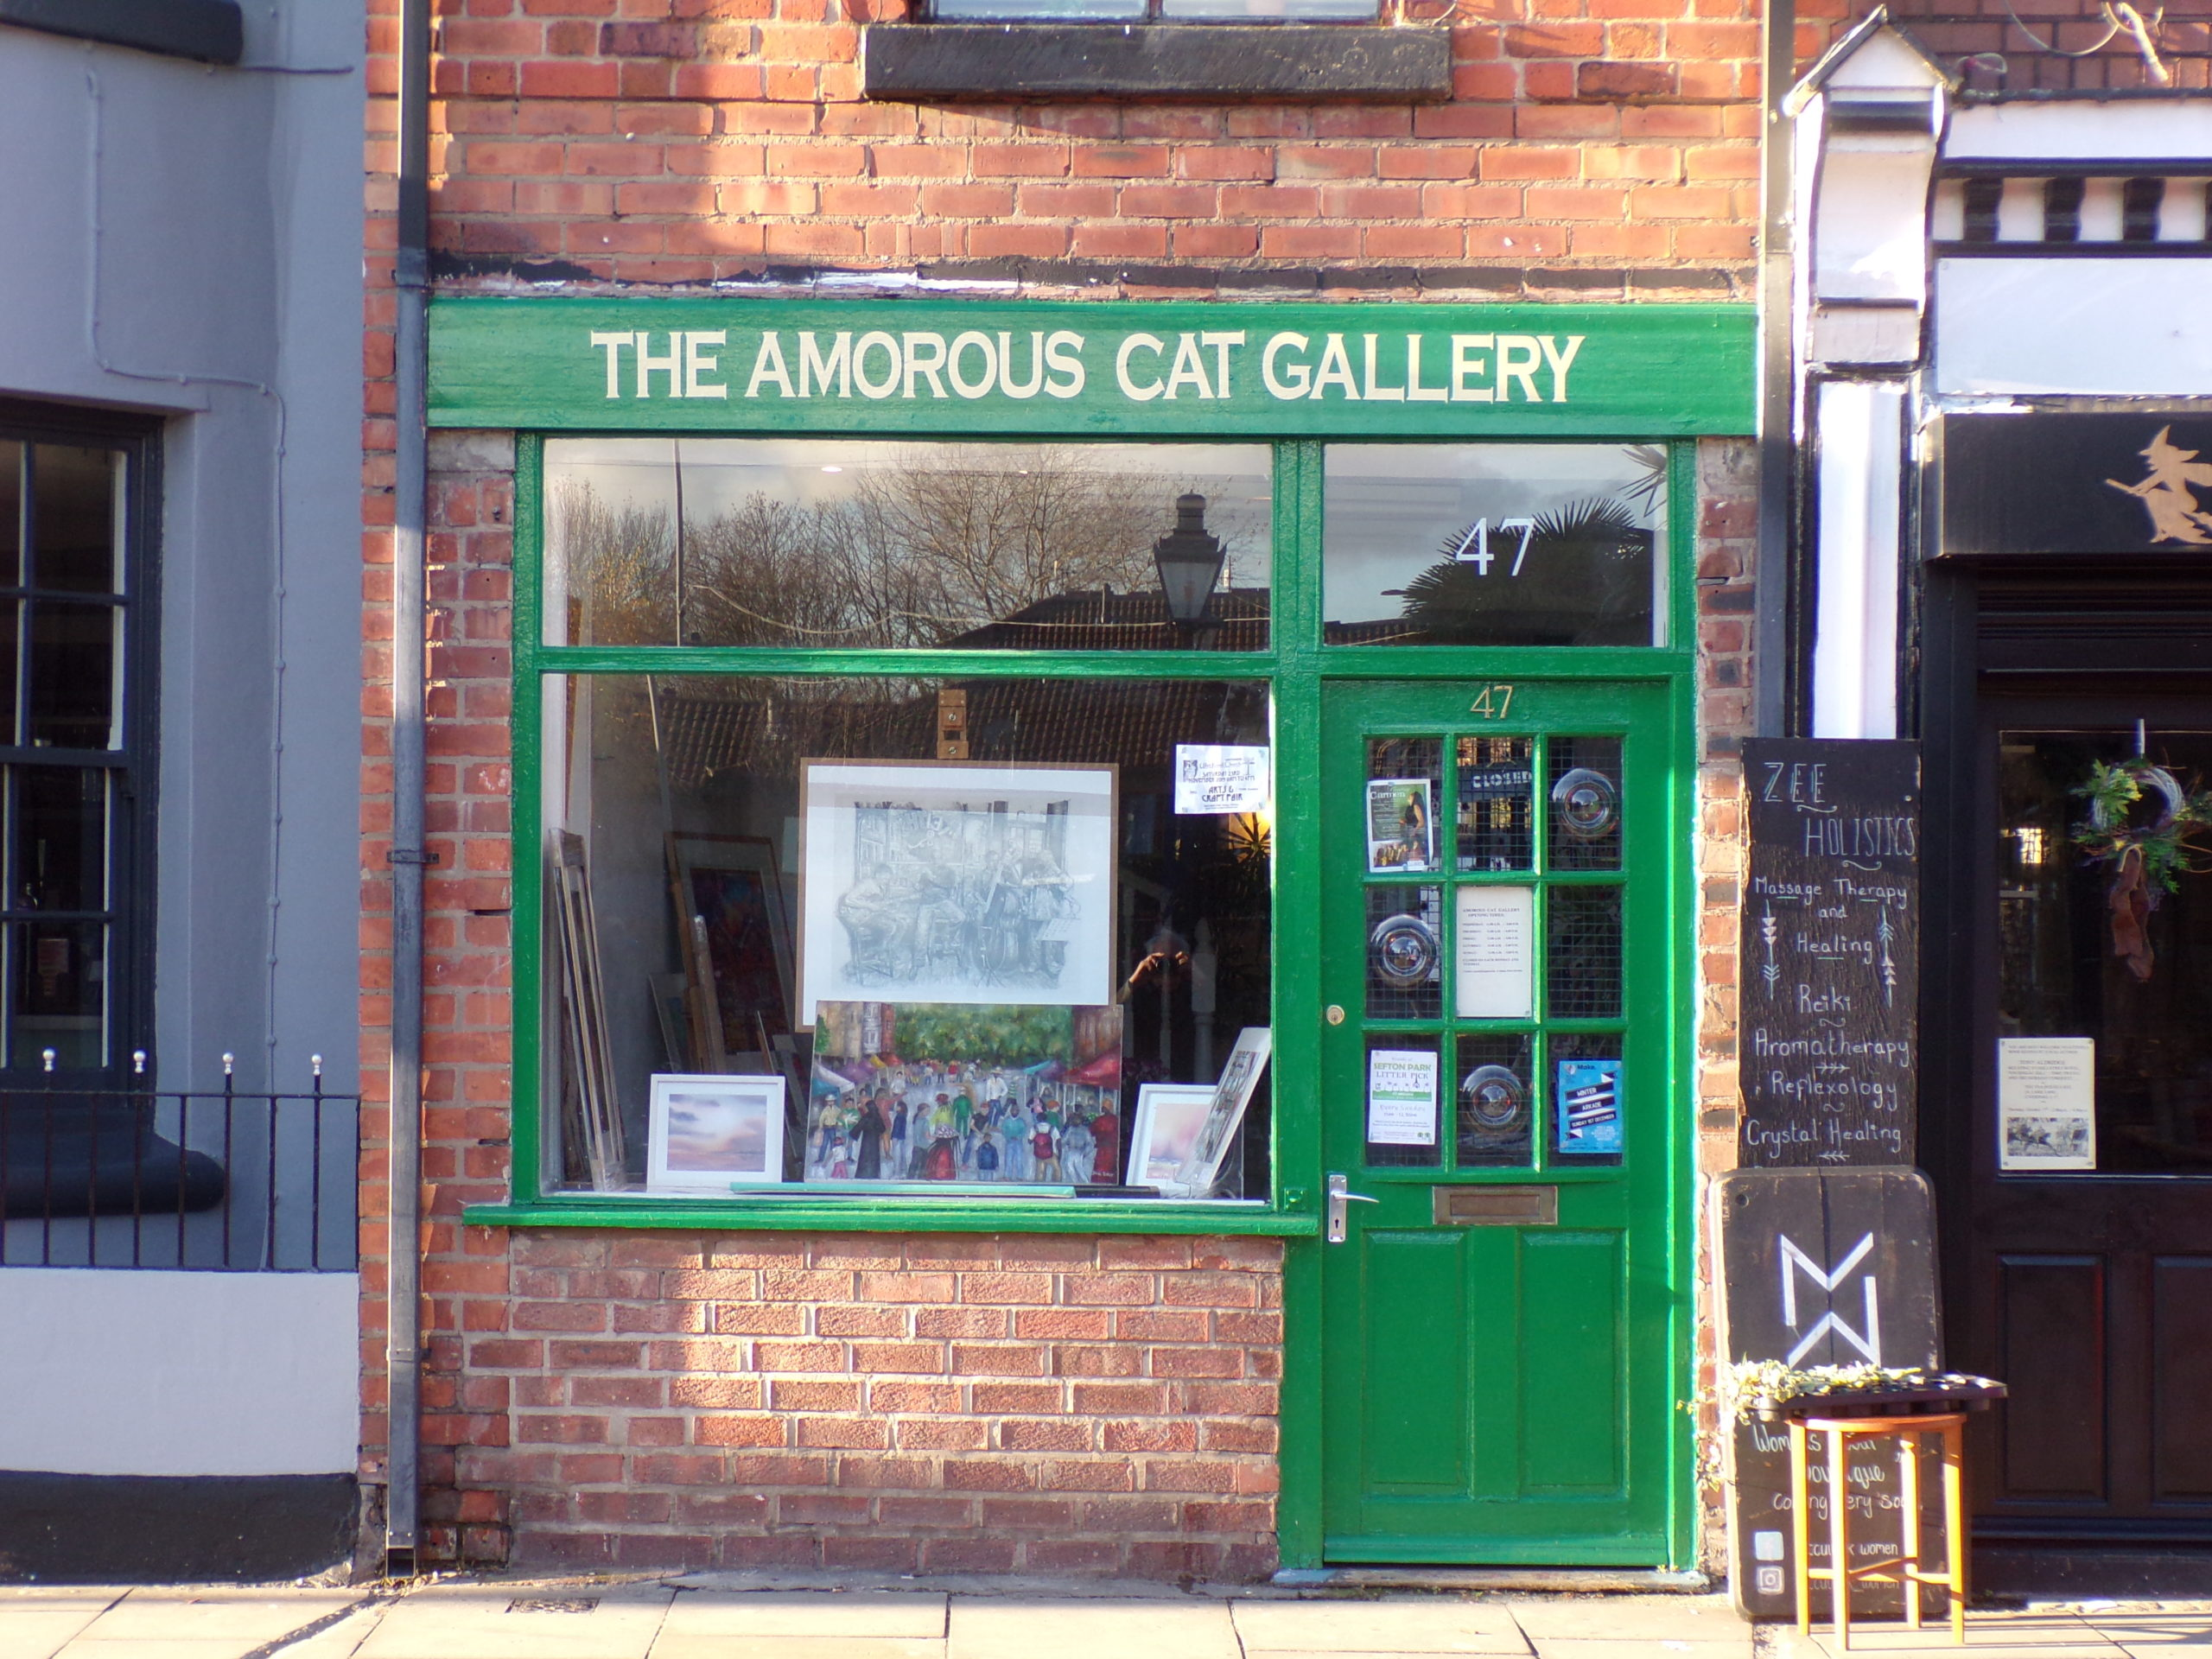 The Amorous Cat Gallery